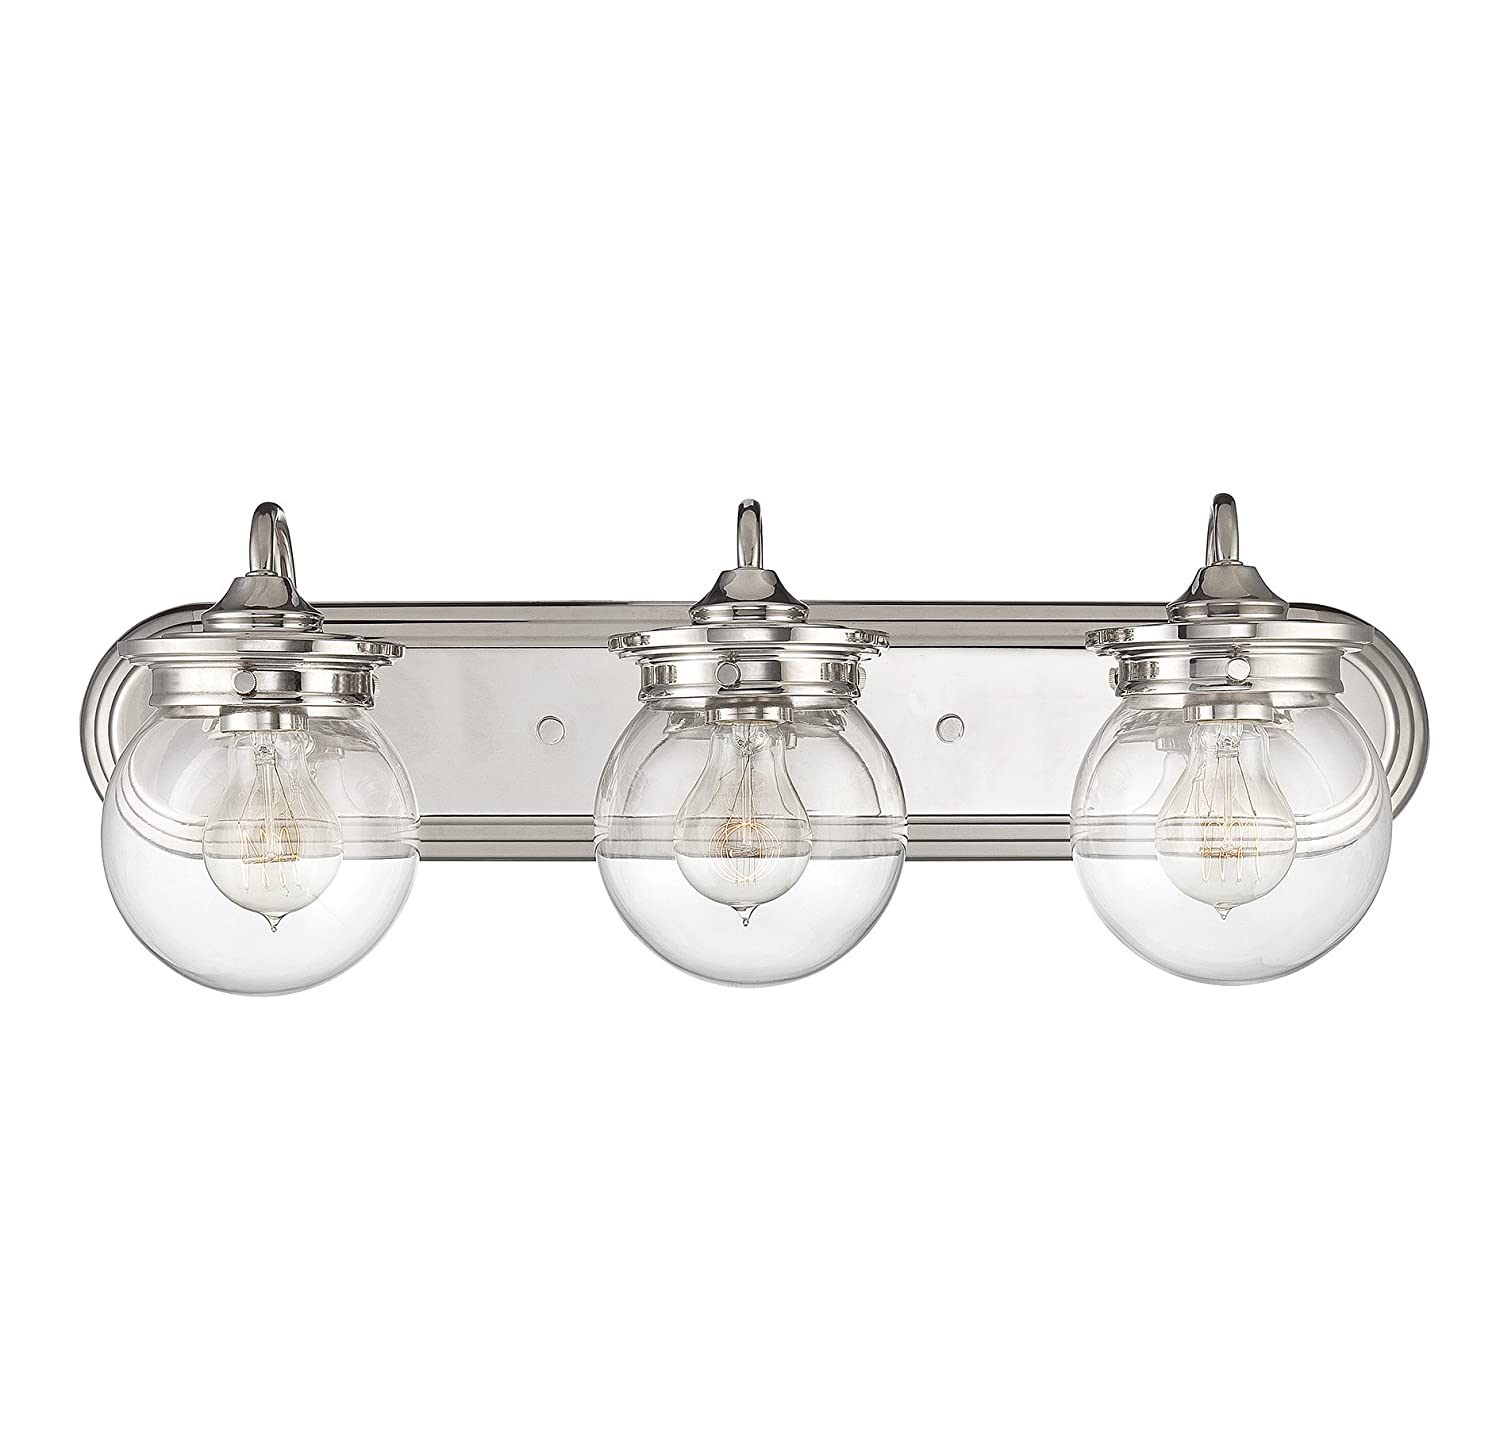 50%OFF Savoy House 8-232-3-109 Downing 3-Light Bath Bar Fixture